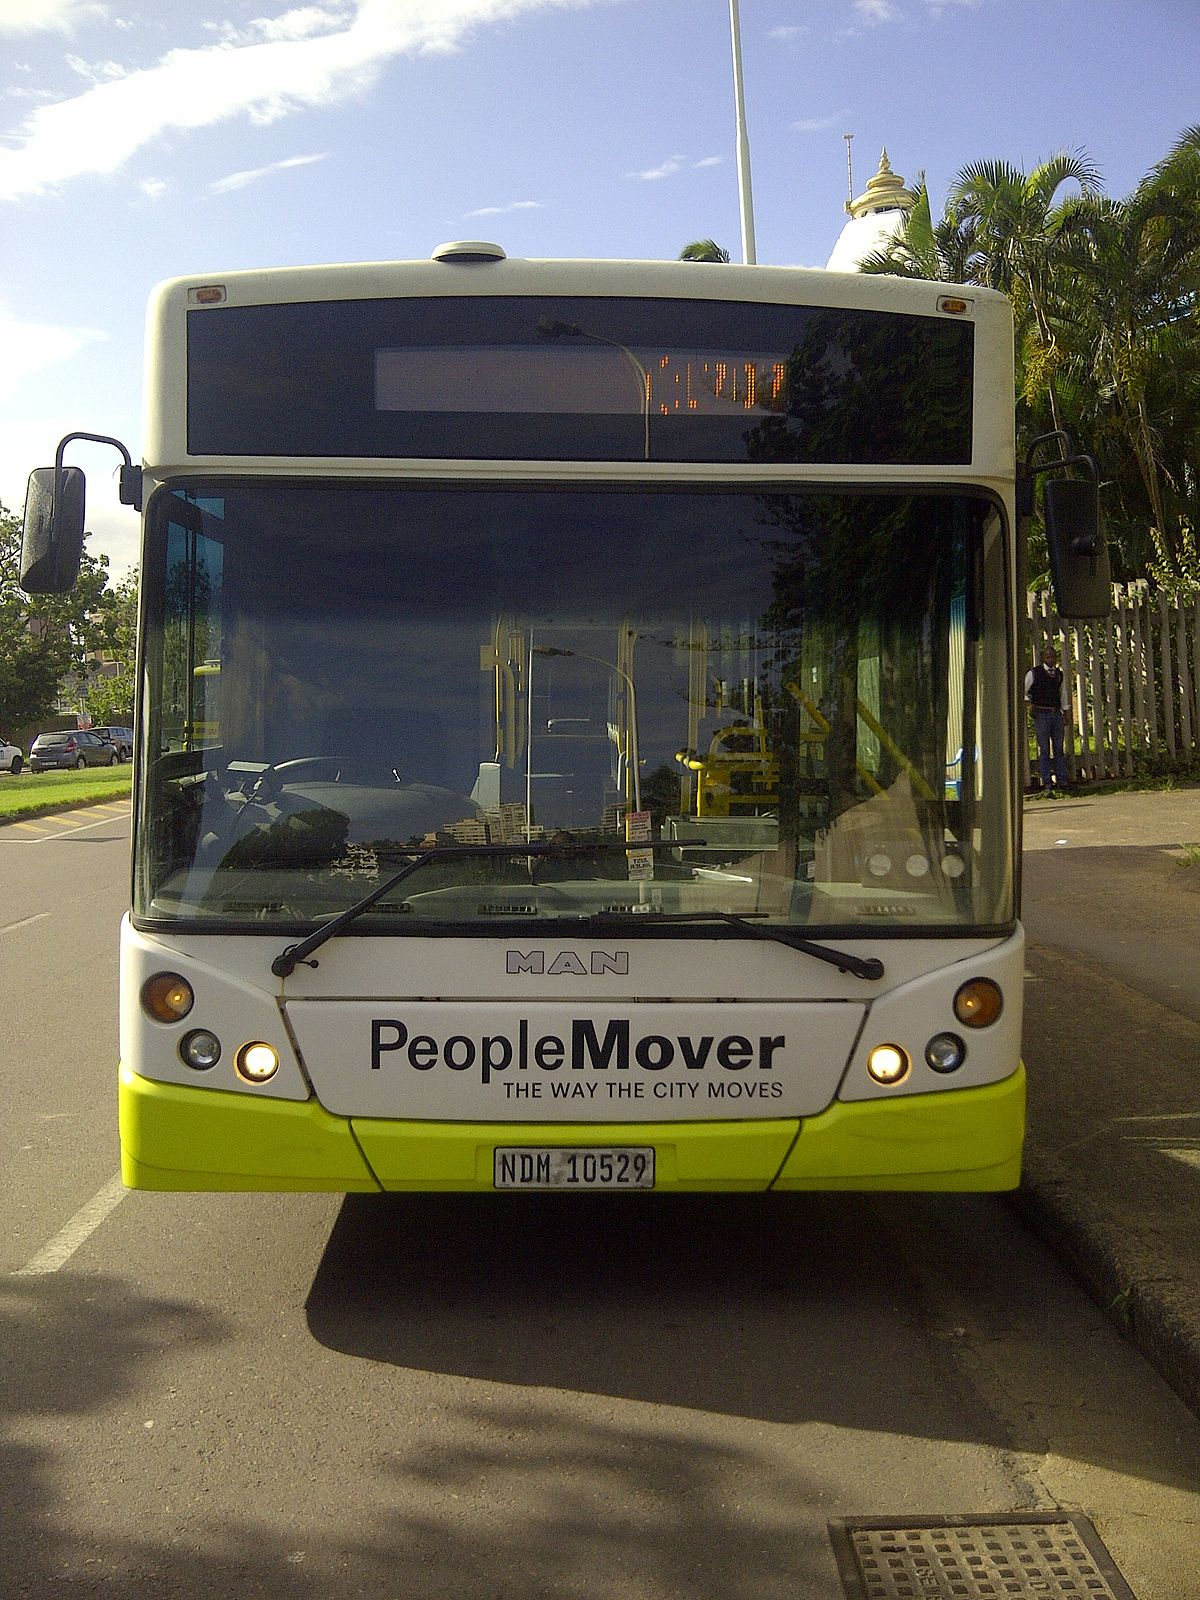 durban people mover